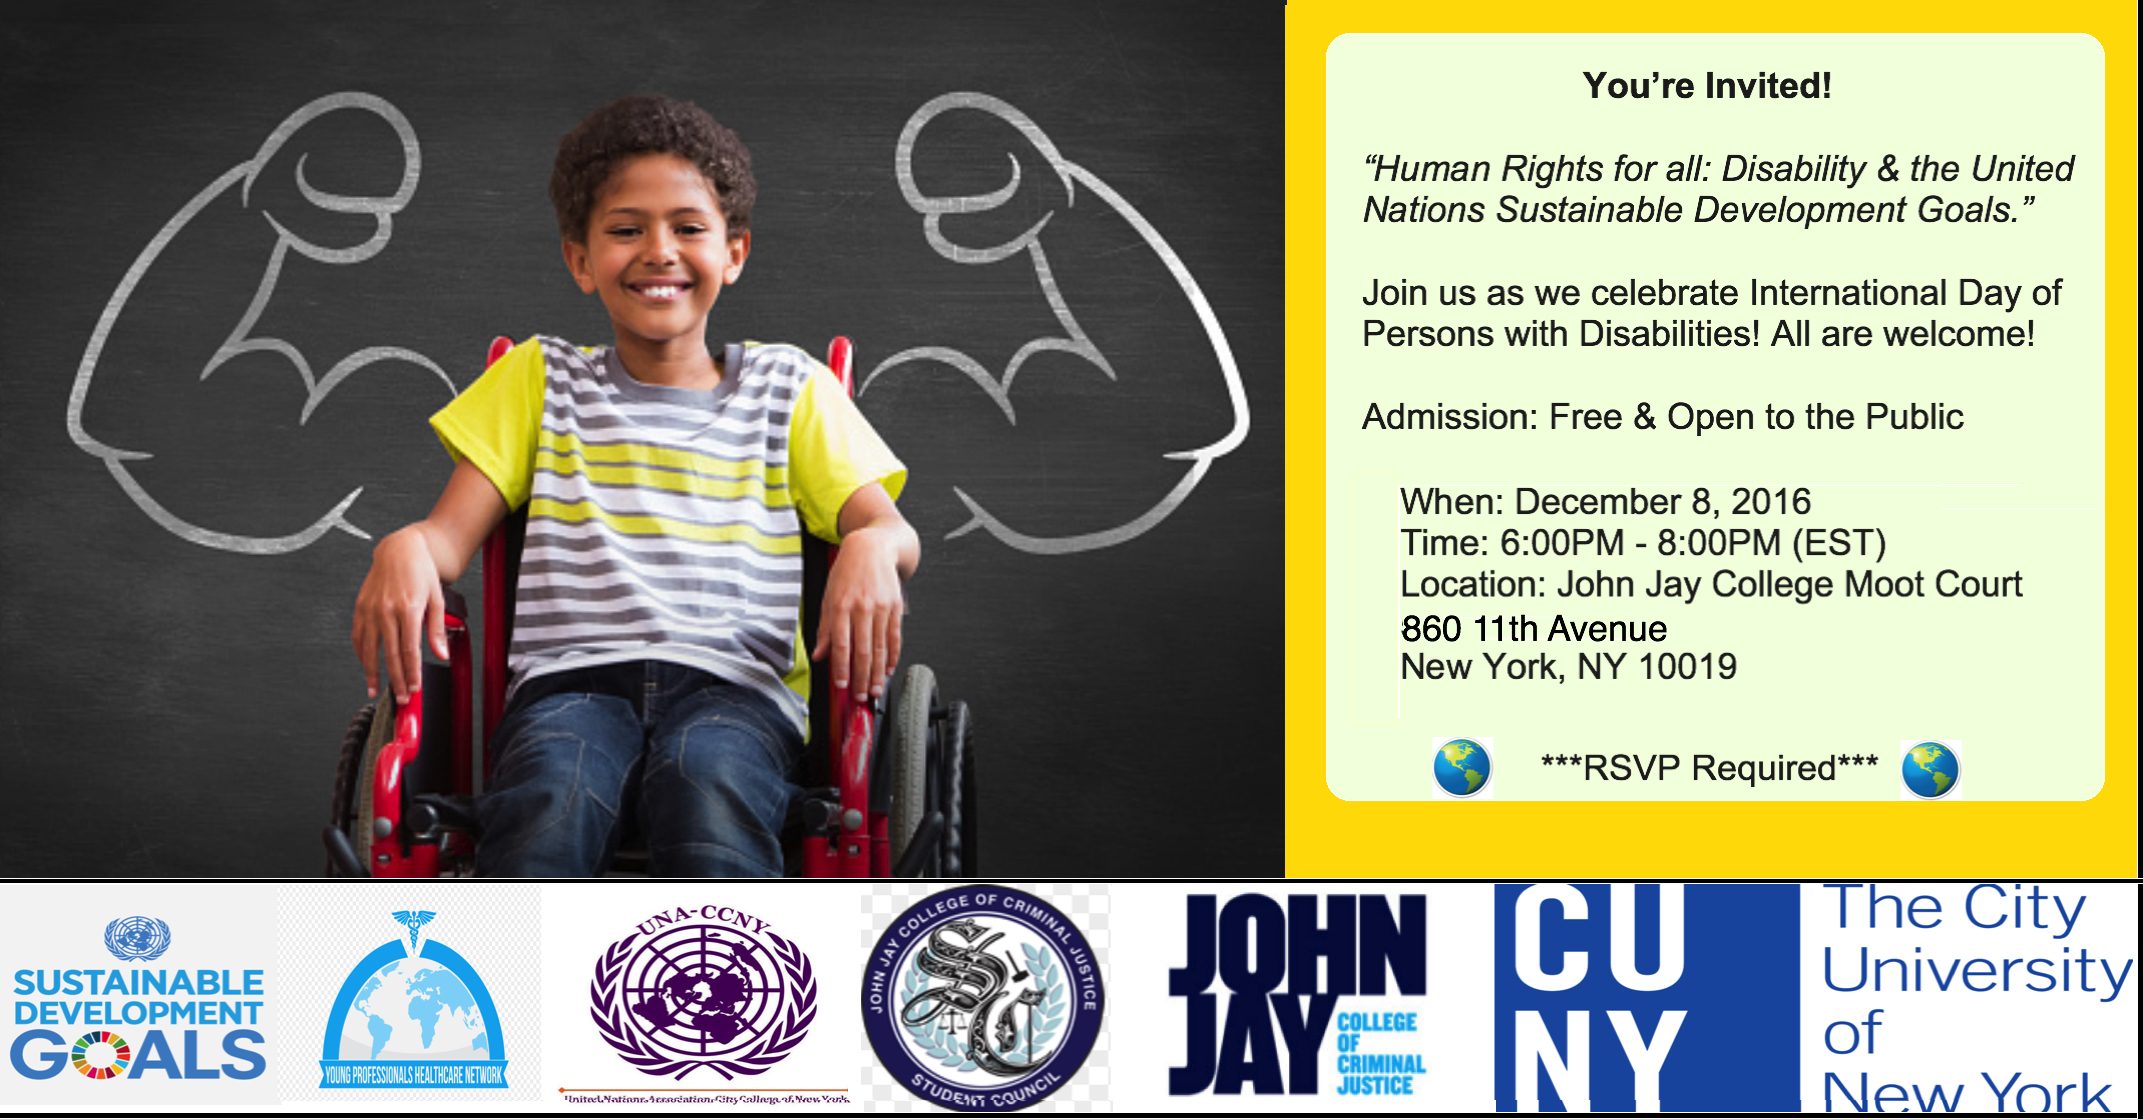 You're Invited to the December 8, 2016 Human Rights for all: Disability & the United Nations Sustainable Development Goals at John Jay College